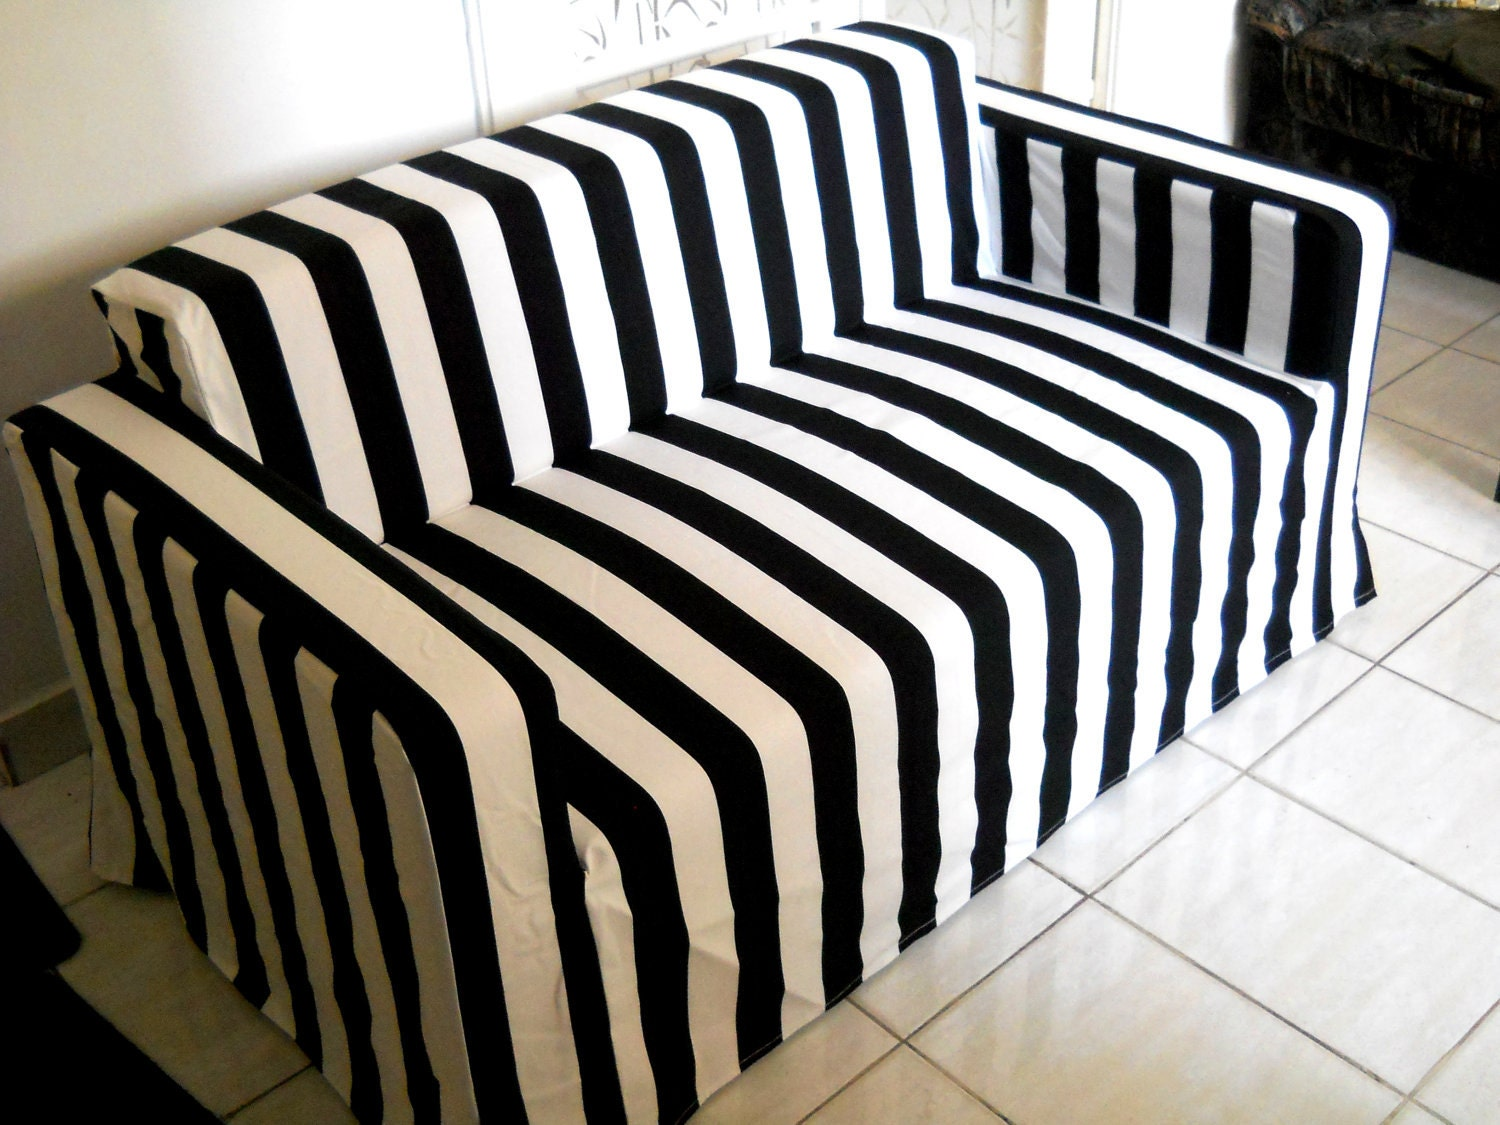 Custom Made Cover For Klobo Sofa From IKEA Wide Stripe